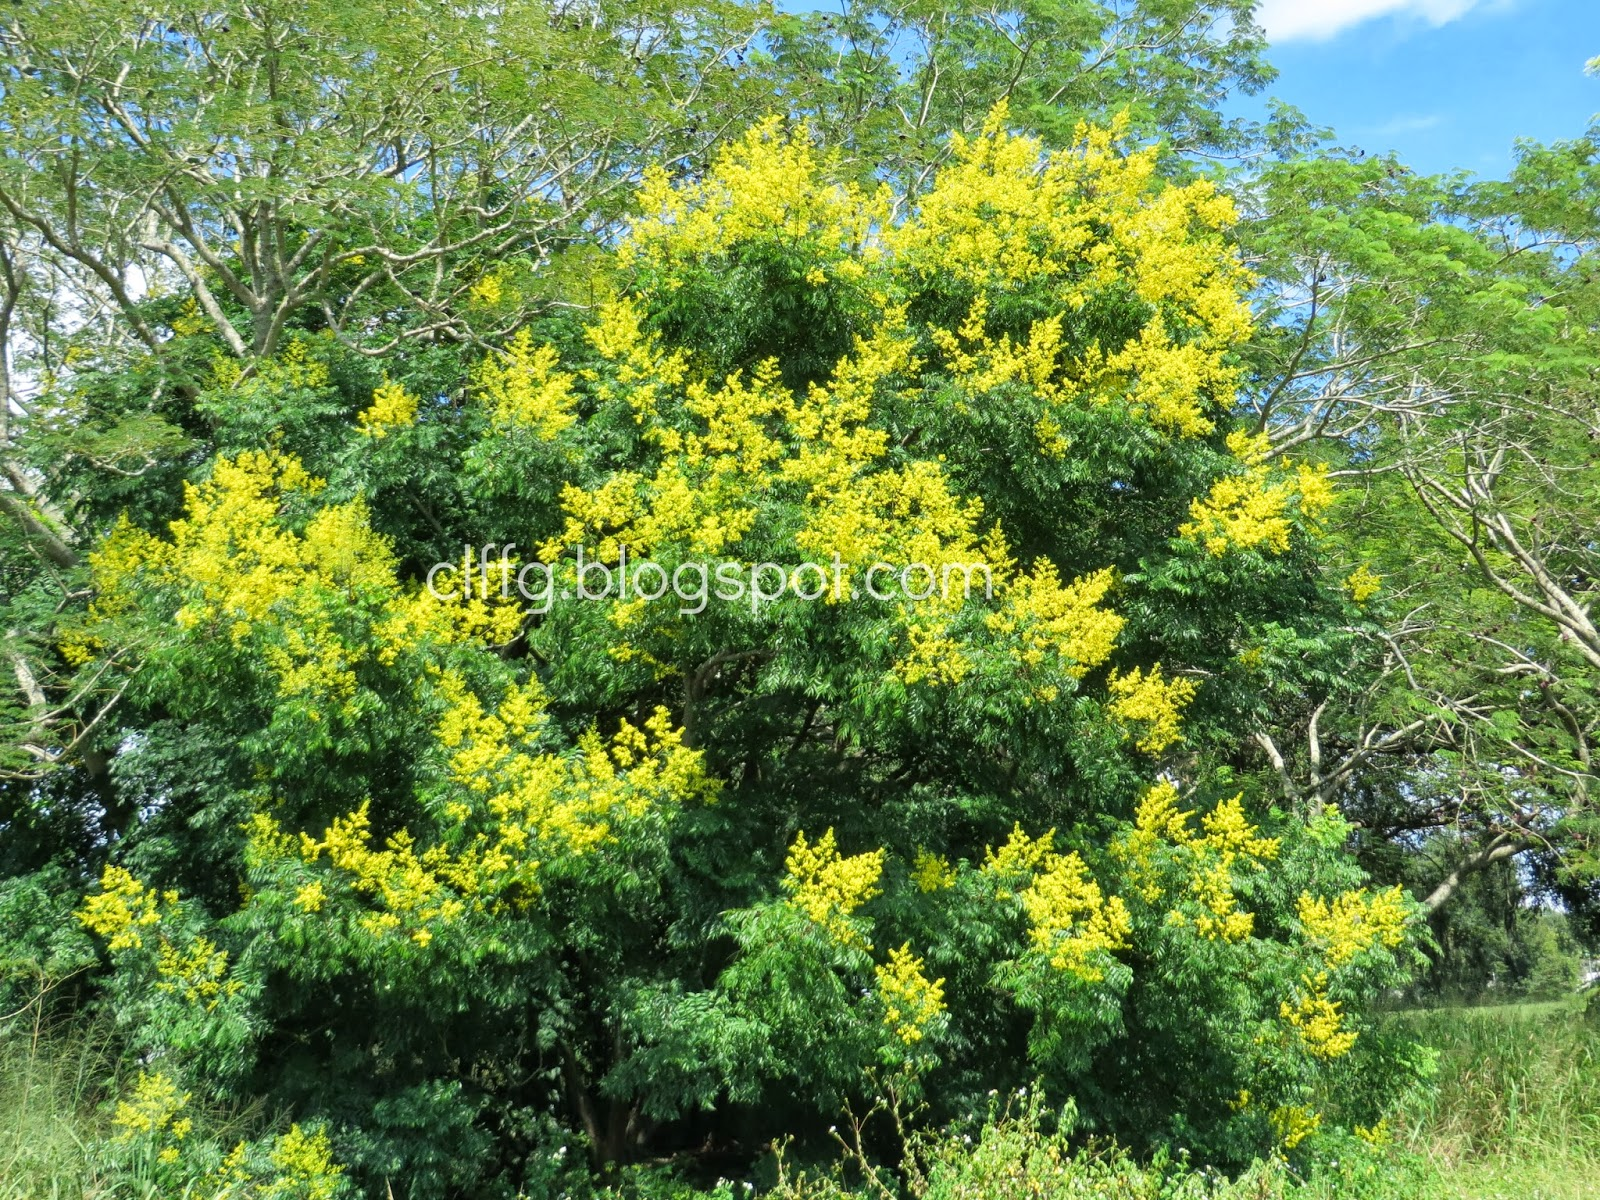 Tree with yellow flowers florida images flower decoration ideas tree with yellow flowers florida images flower decoration ideas tree with yellow flowers florida image collections mightylinksfo